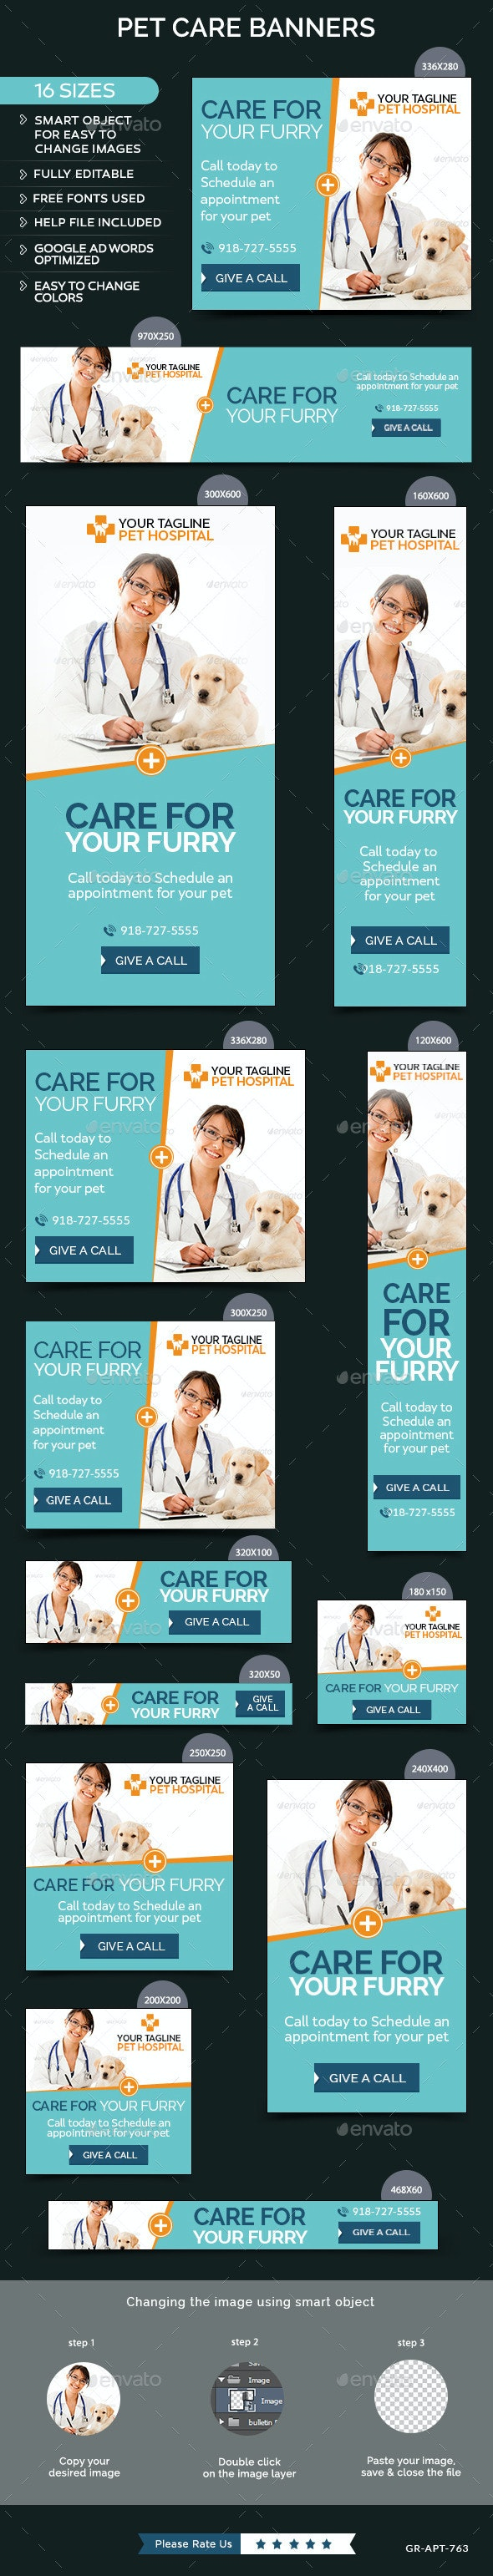 Pet Care Banners - Banners & Ads Web Elements